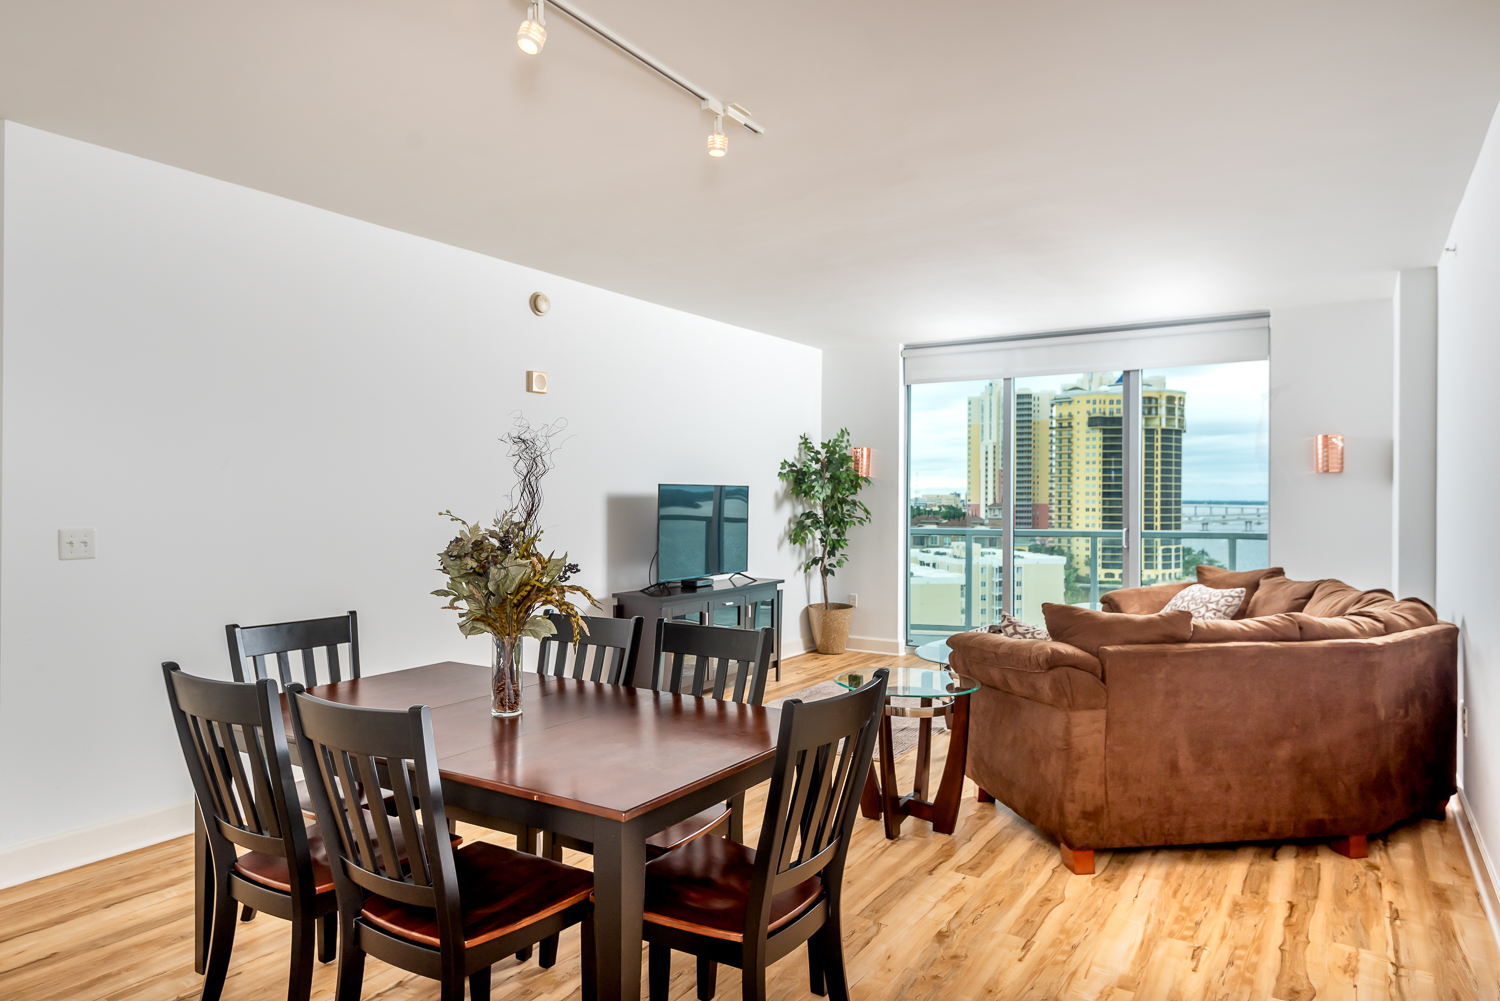 Fort-myers-fl-river-condo-oasis-living-dining-room